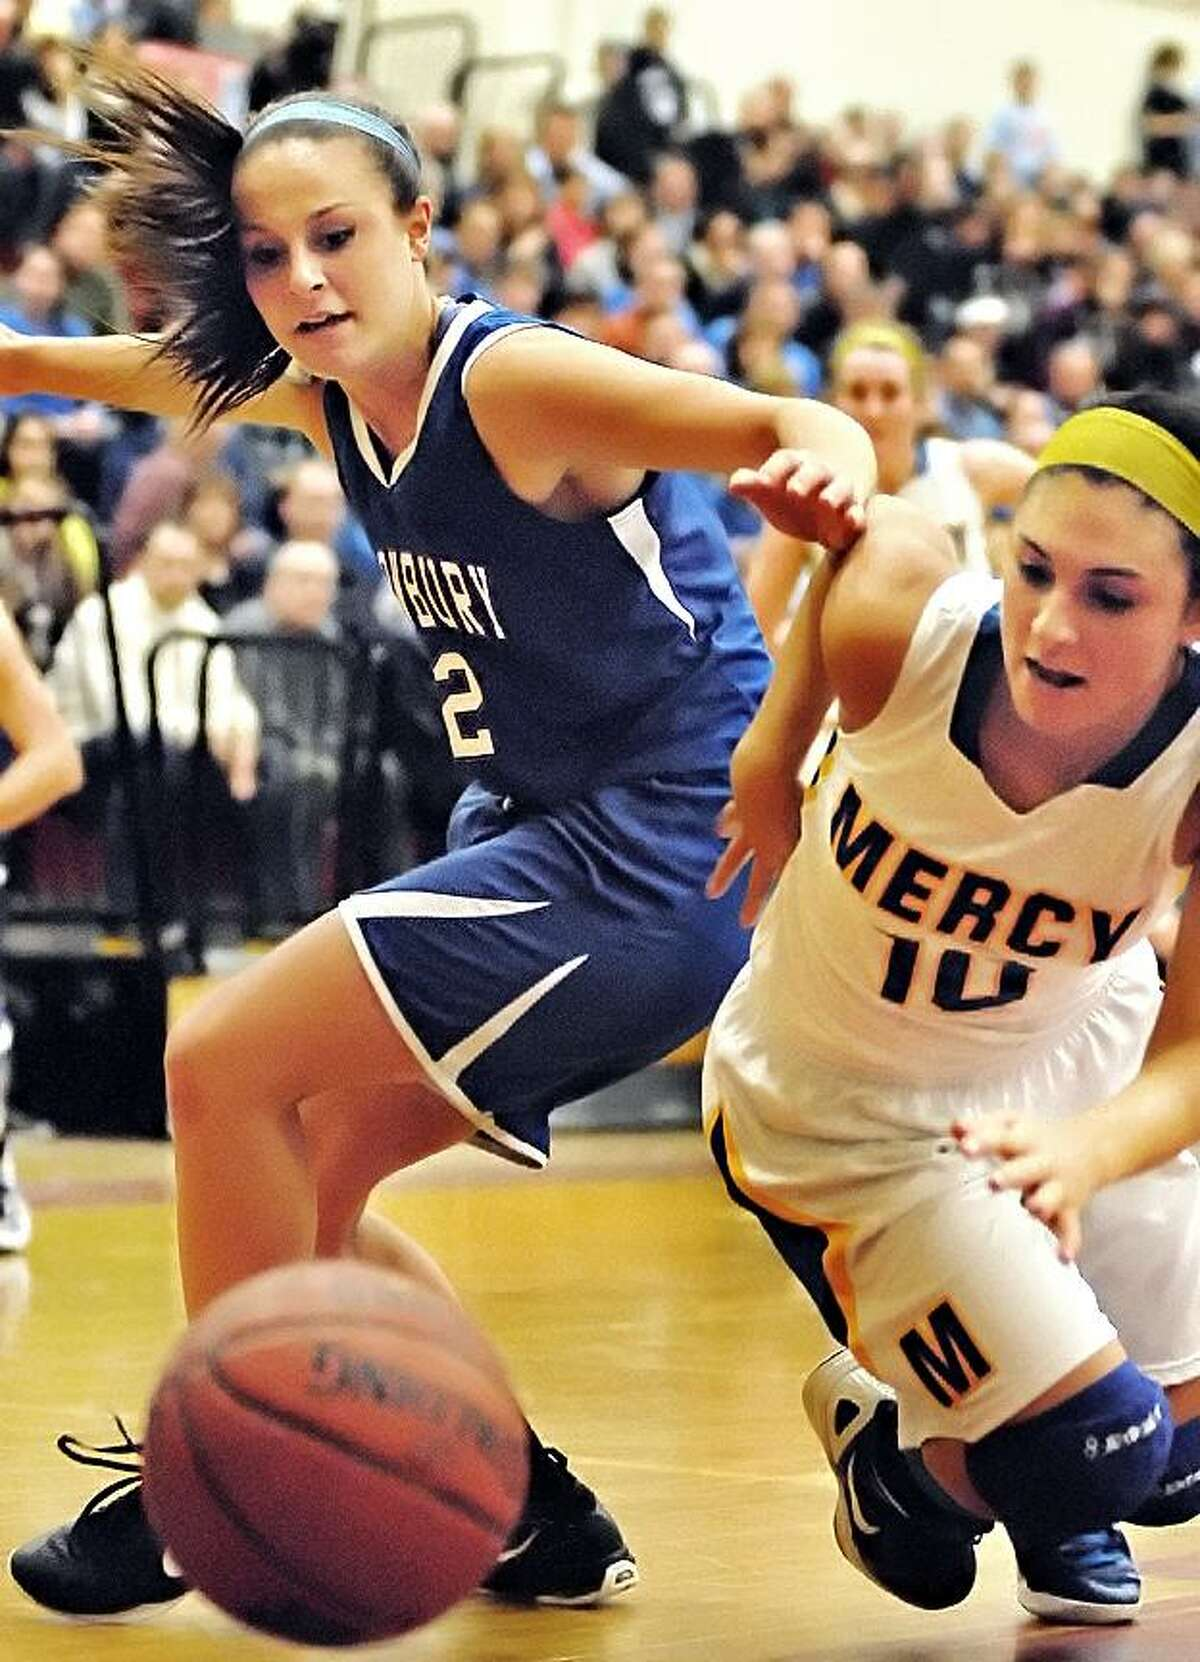 Catherine Avalone/The Middletown PressMercy senior Jordyn Nappi battles Glastonbury senior Katherne Nuzzolo for a loose ball in the second half of the Class LL Semifinal game. Mercy's46-43 win over Glastonbury in the CIAC Class LL at New Britain High School earns the Tigers their fourth consecutive appearance in the championship game this weekend at Mohegan Sun this weekend.